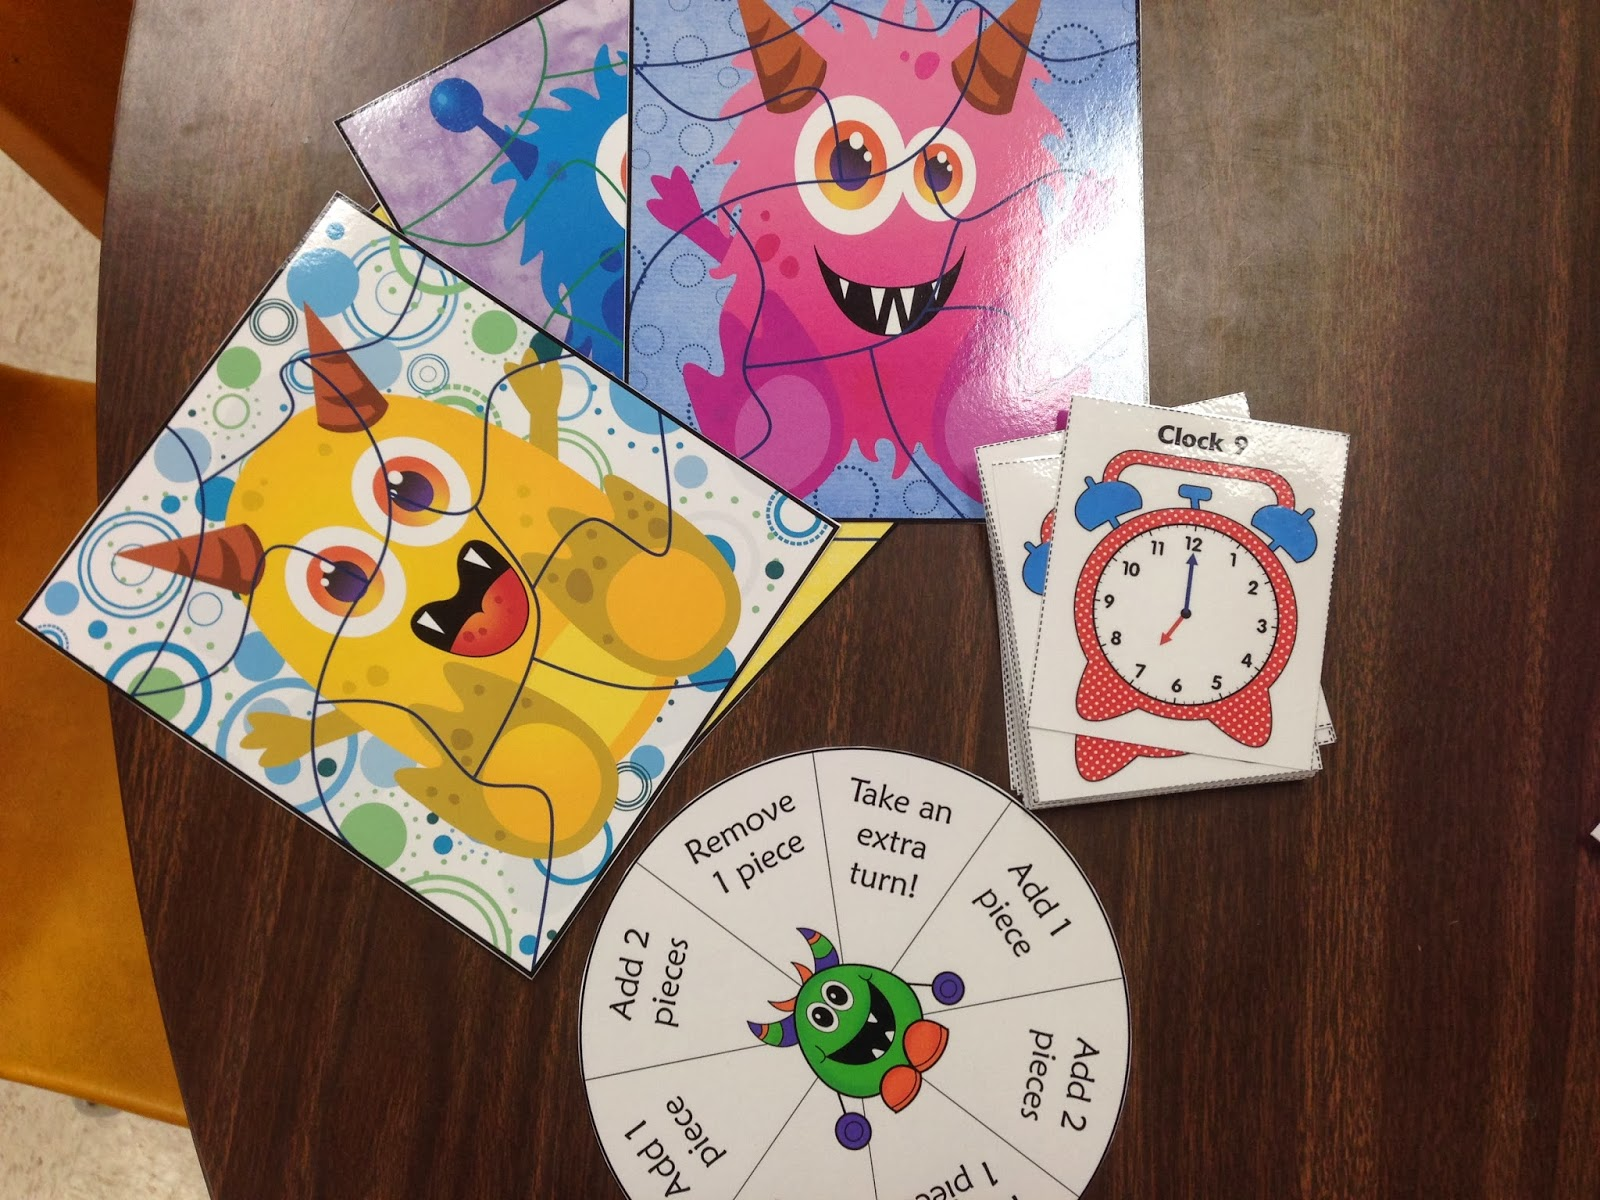 http://www.teacherspayteachers.com/Product/Monster-Math-Mix-up-Telling-Time-Common-Core-Aligned-647585